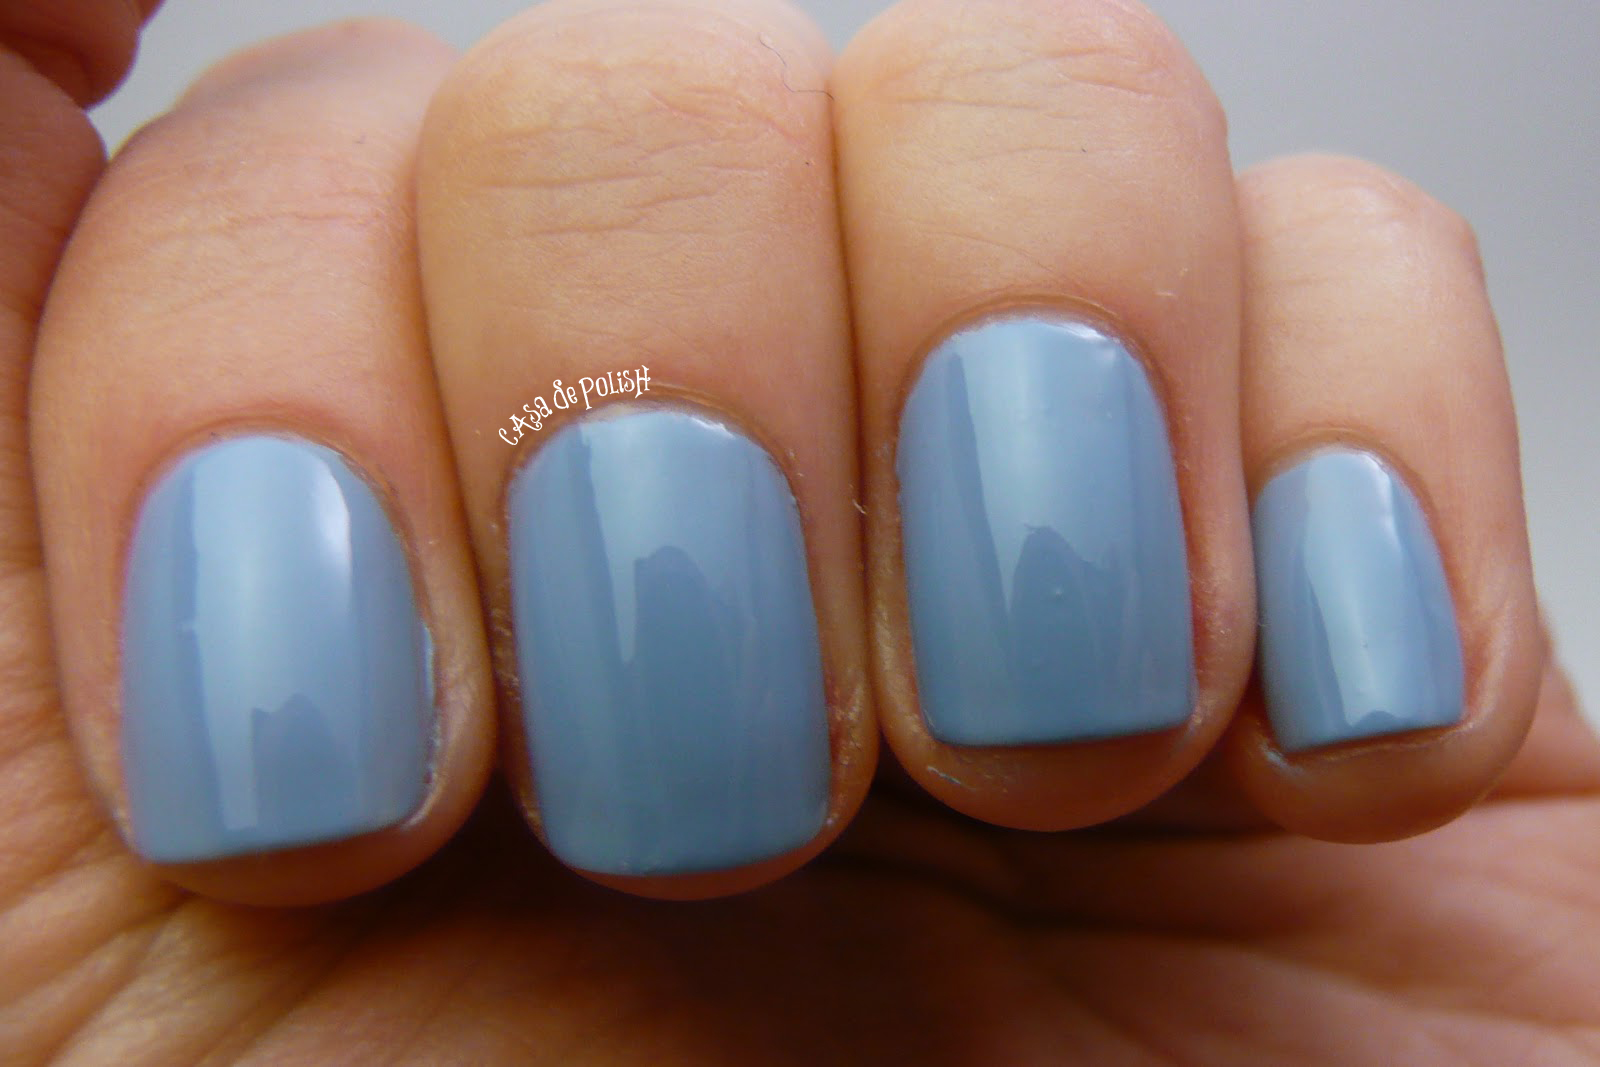 Casa de polish nail art nail off saran wrap nails tutorial but i did not heed the lessons of my first attempt and forgot to put a top coat on the base color i painted my nails the top color maybelline color show prinsesfo Images